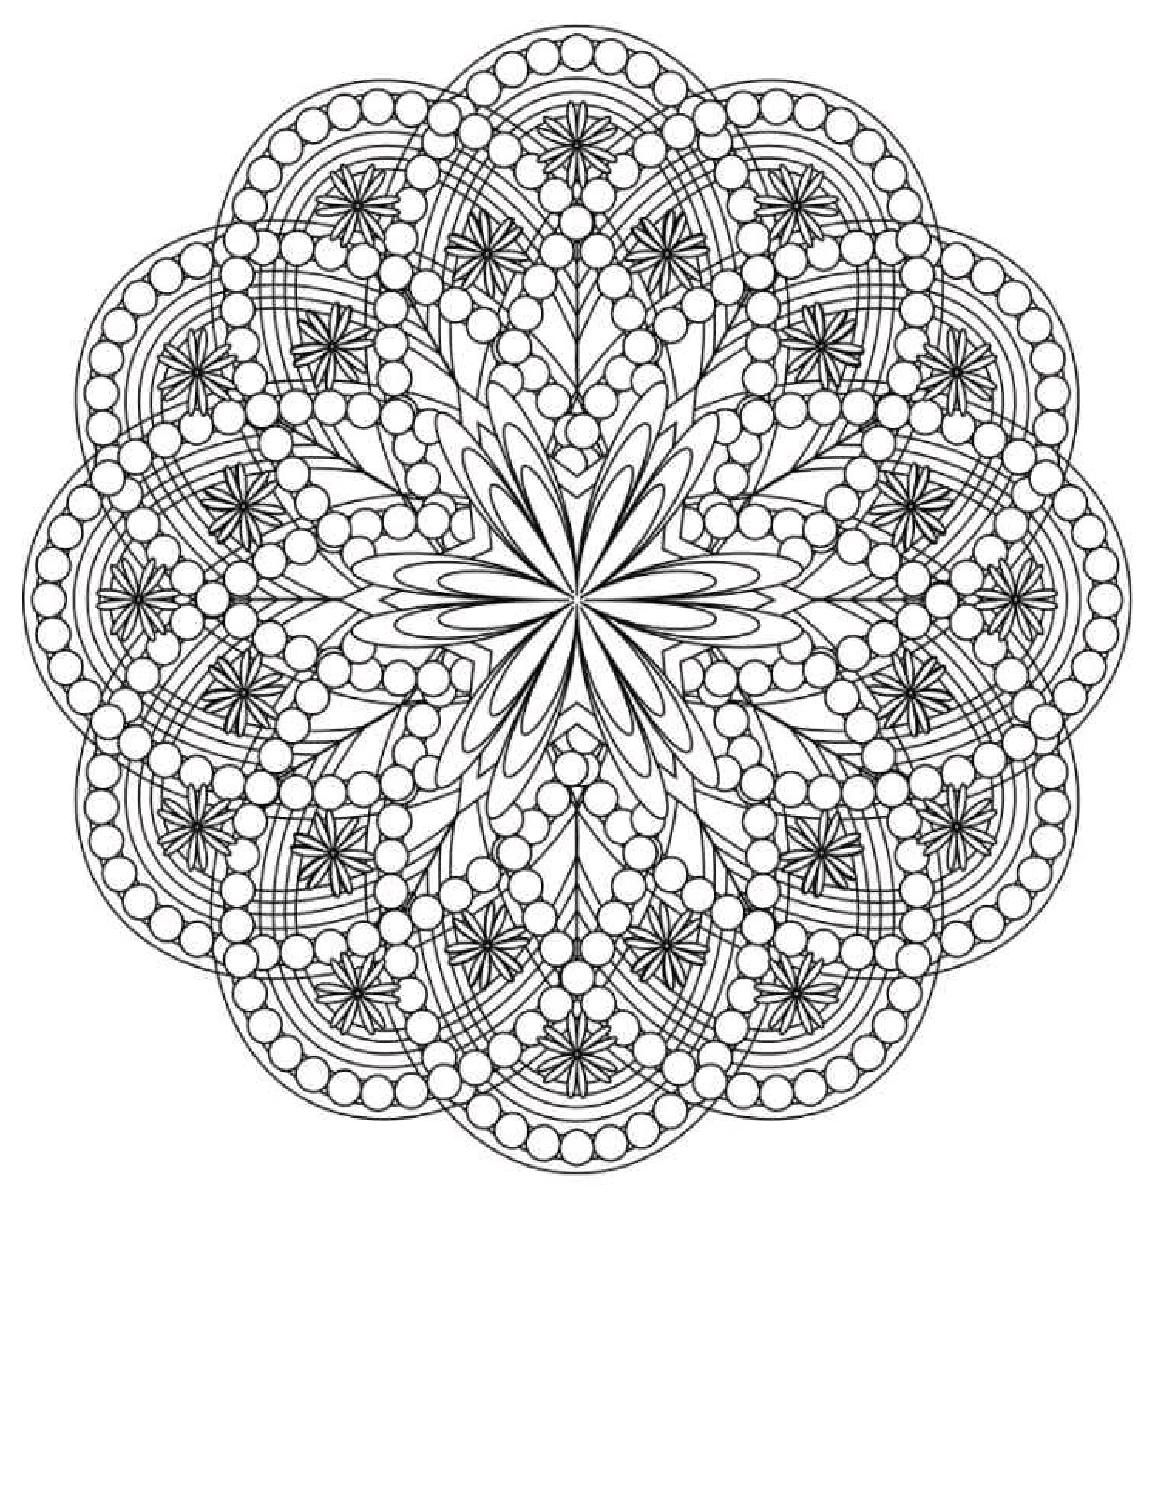 coloring flower mandalas mandalas mandala coloring pages mandala coloring sheets. Black Bedroom Furniture Sets. Home Design Ideas